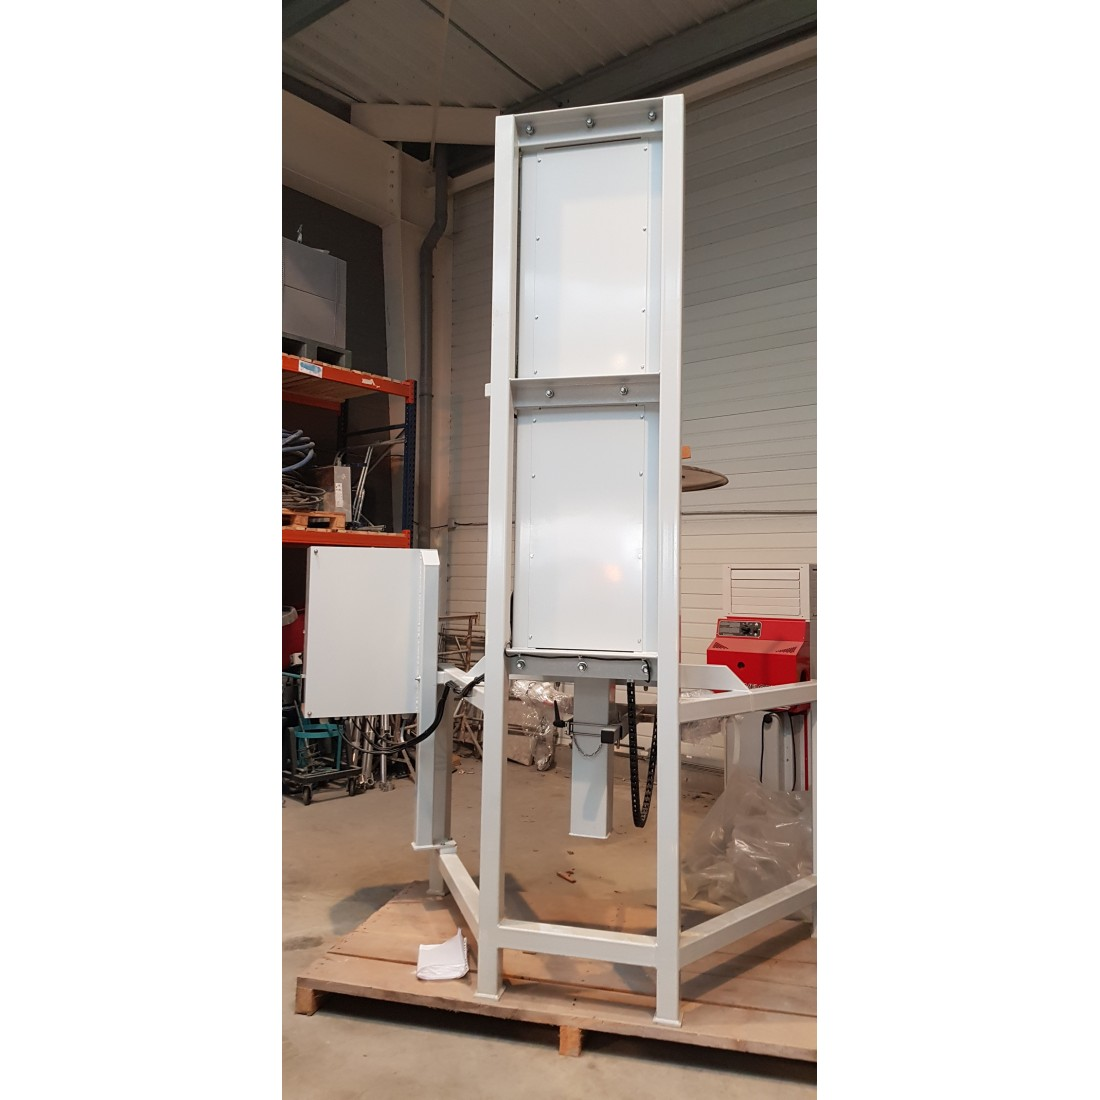 R6ME6396 VMI Mixer - Cynabloc Mobimix 1500 Type - Visible by appointment